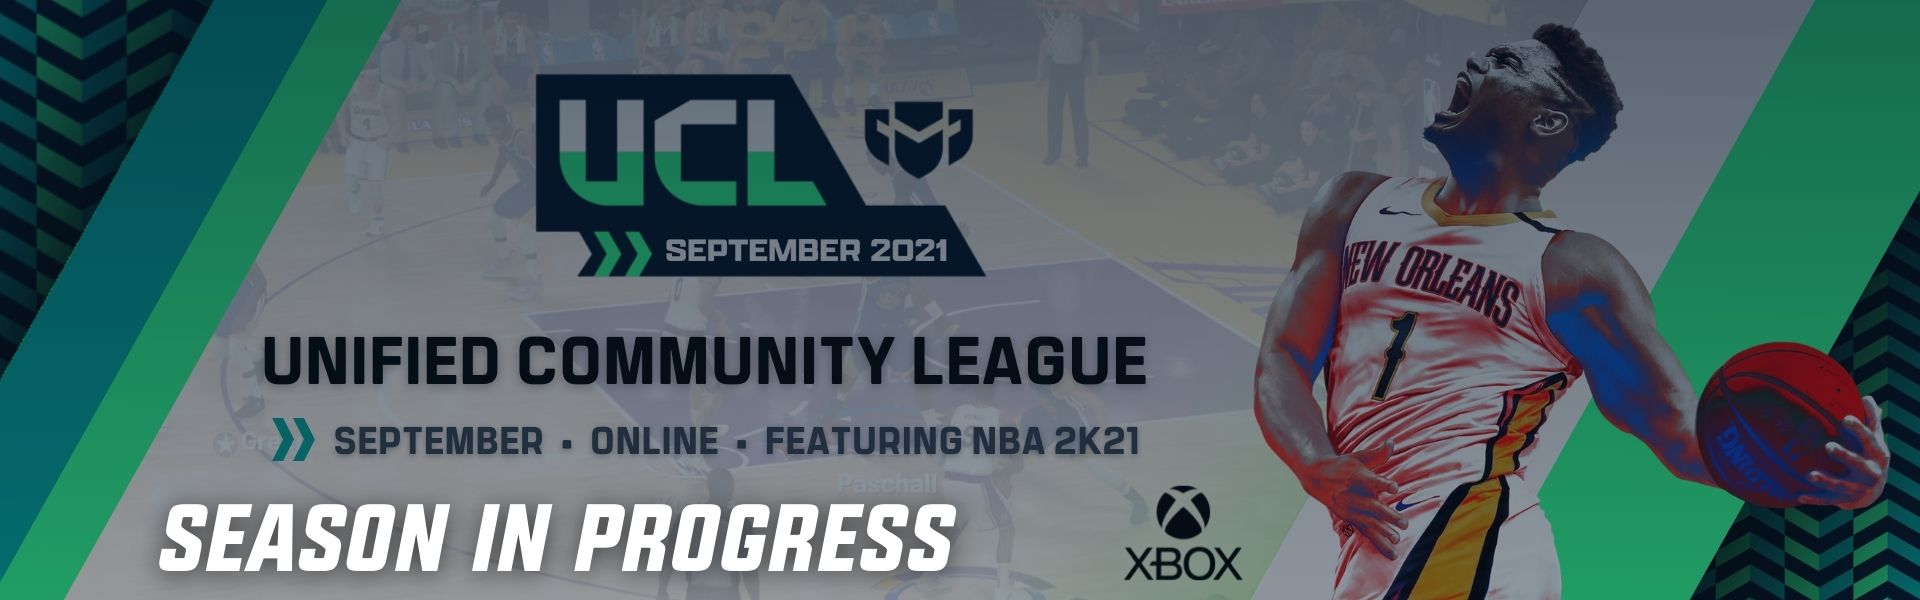 September UCL: Featuring NBA2K21 – Xbox One